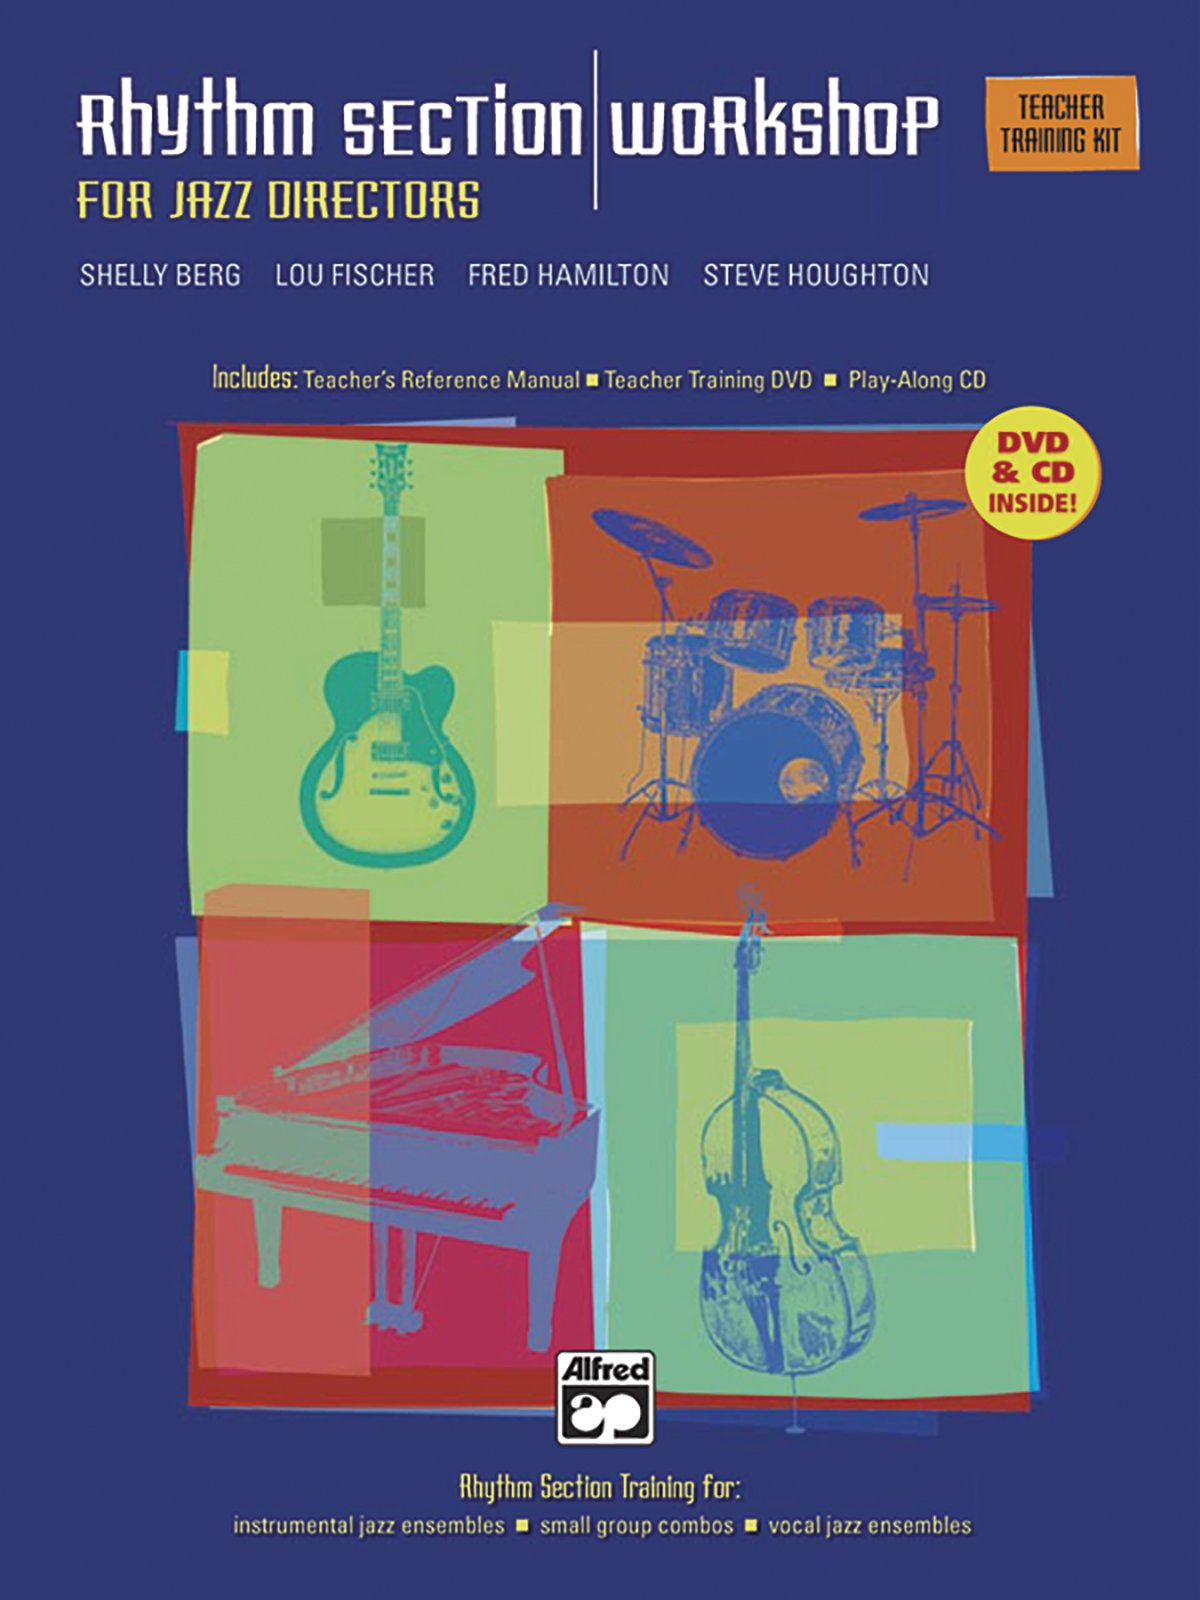 Download Rhythm Section Workshop for Jazz Directors: Rhythm Section Training for Instrumental Jazz Ensembles * Small Group Combos * Vocal Jazz Ensembles (Complete Kit), Book, DVD & CDs pdf